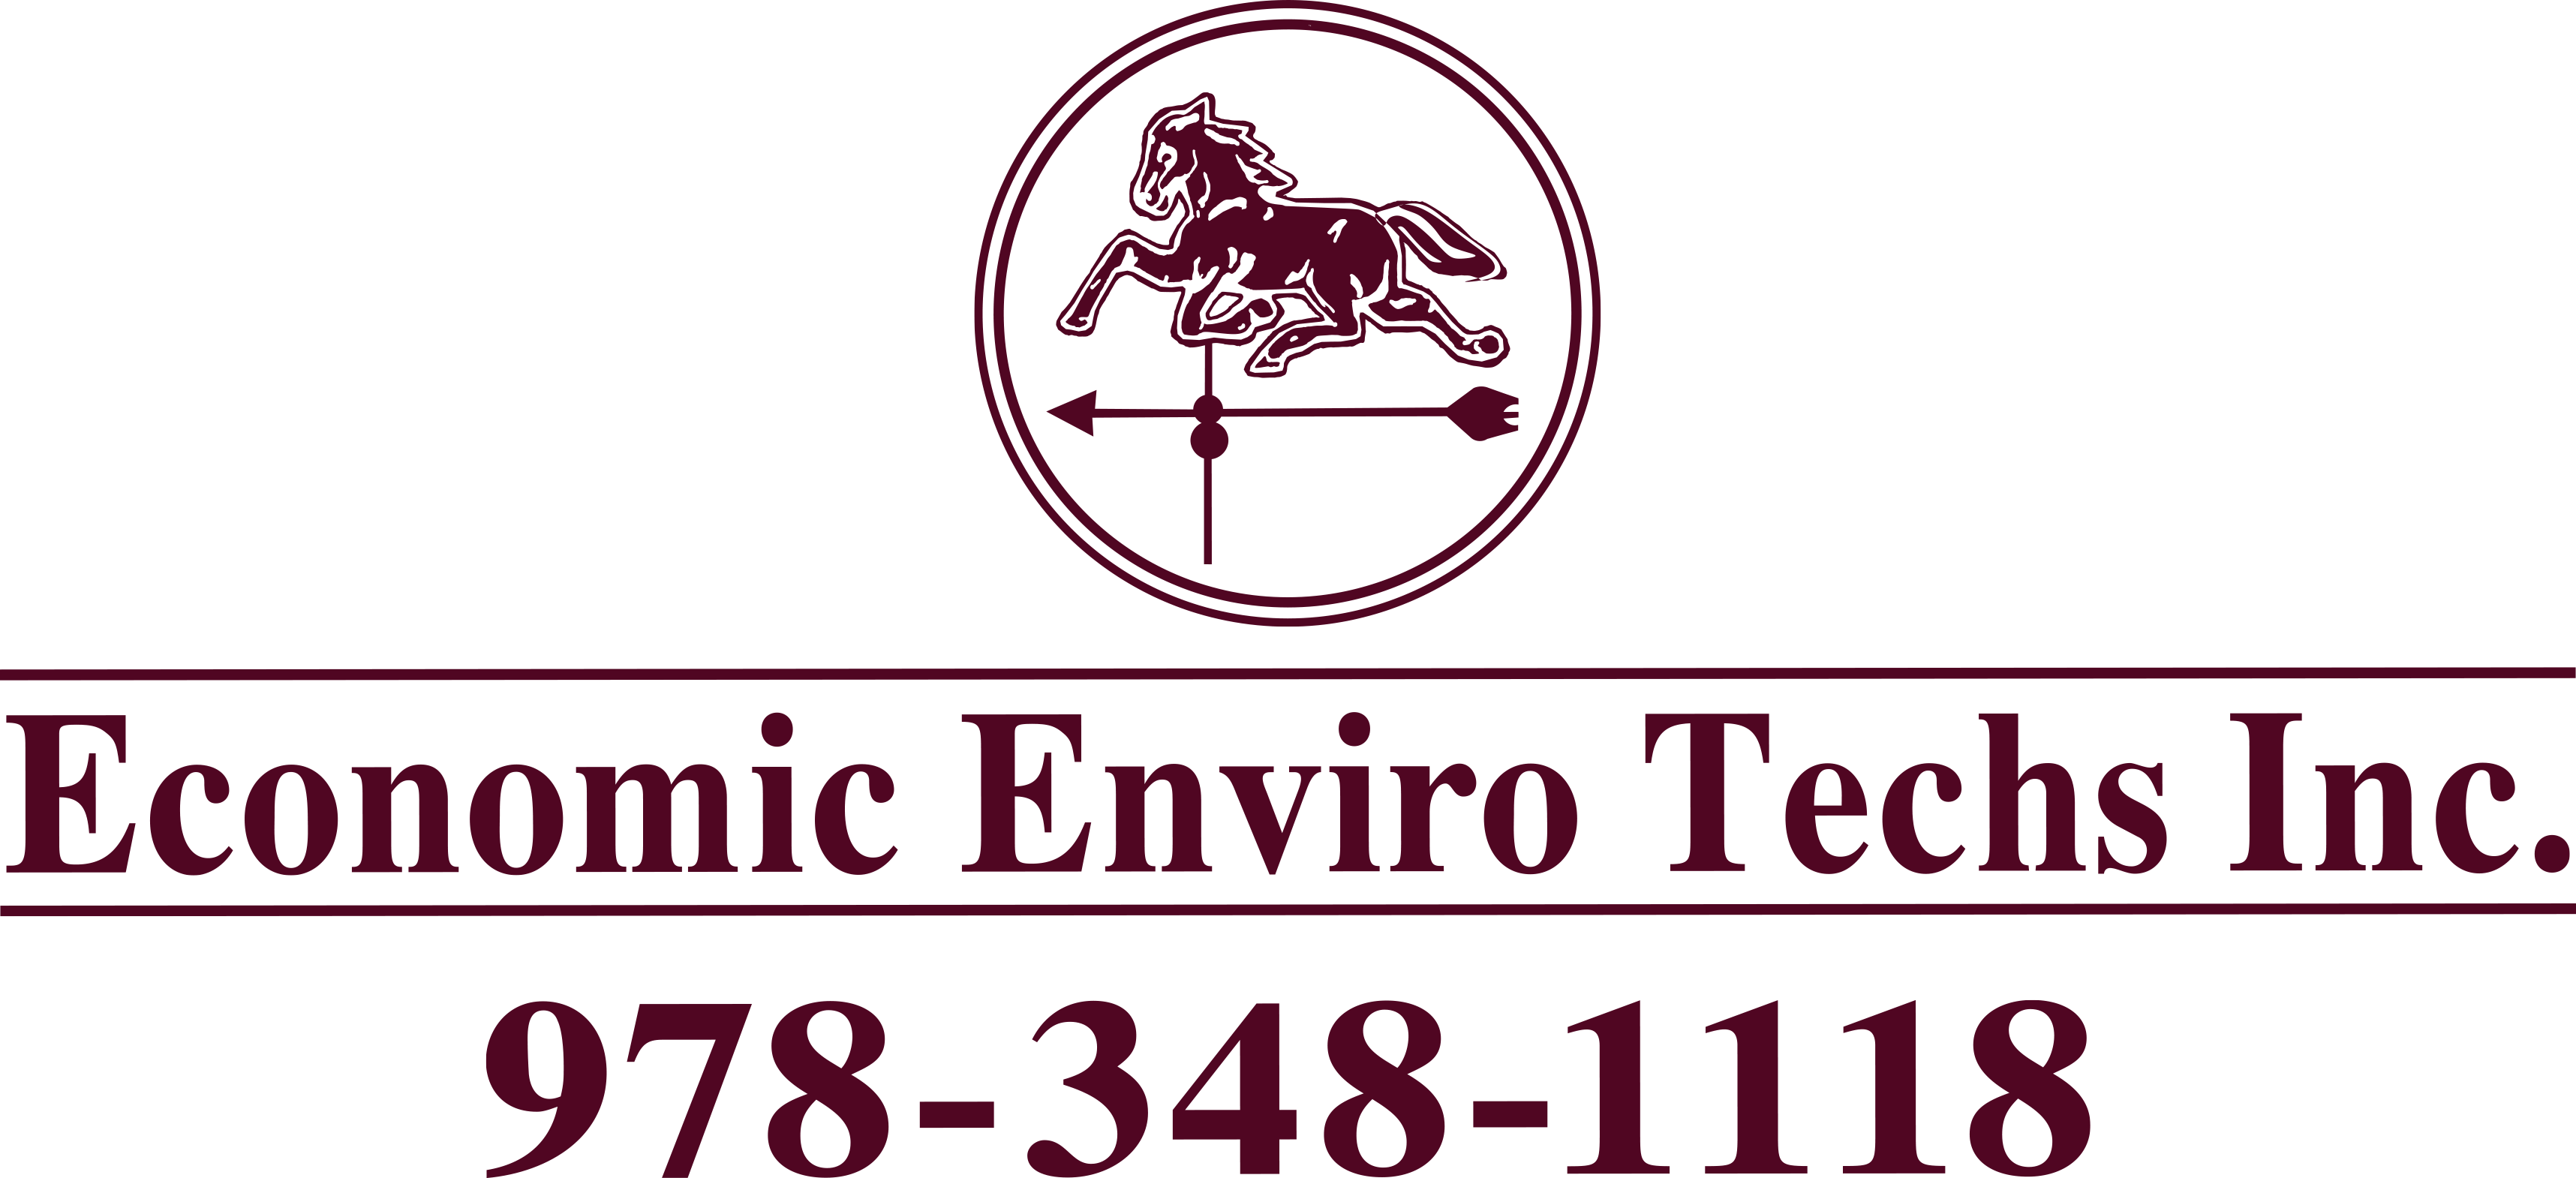 Economic Enviro Techs Inc Fitchburg Ma